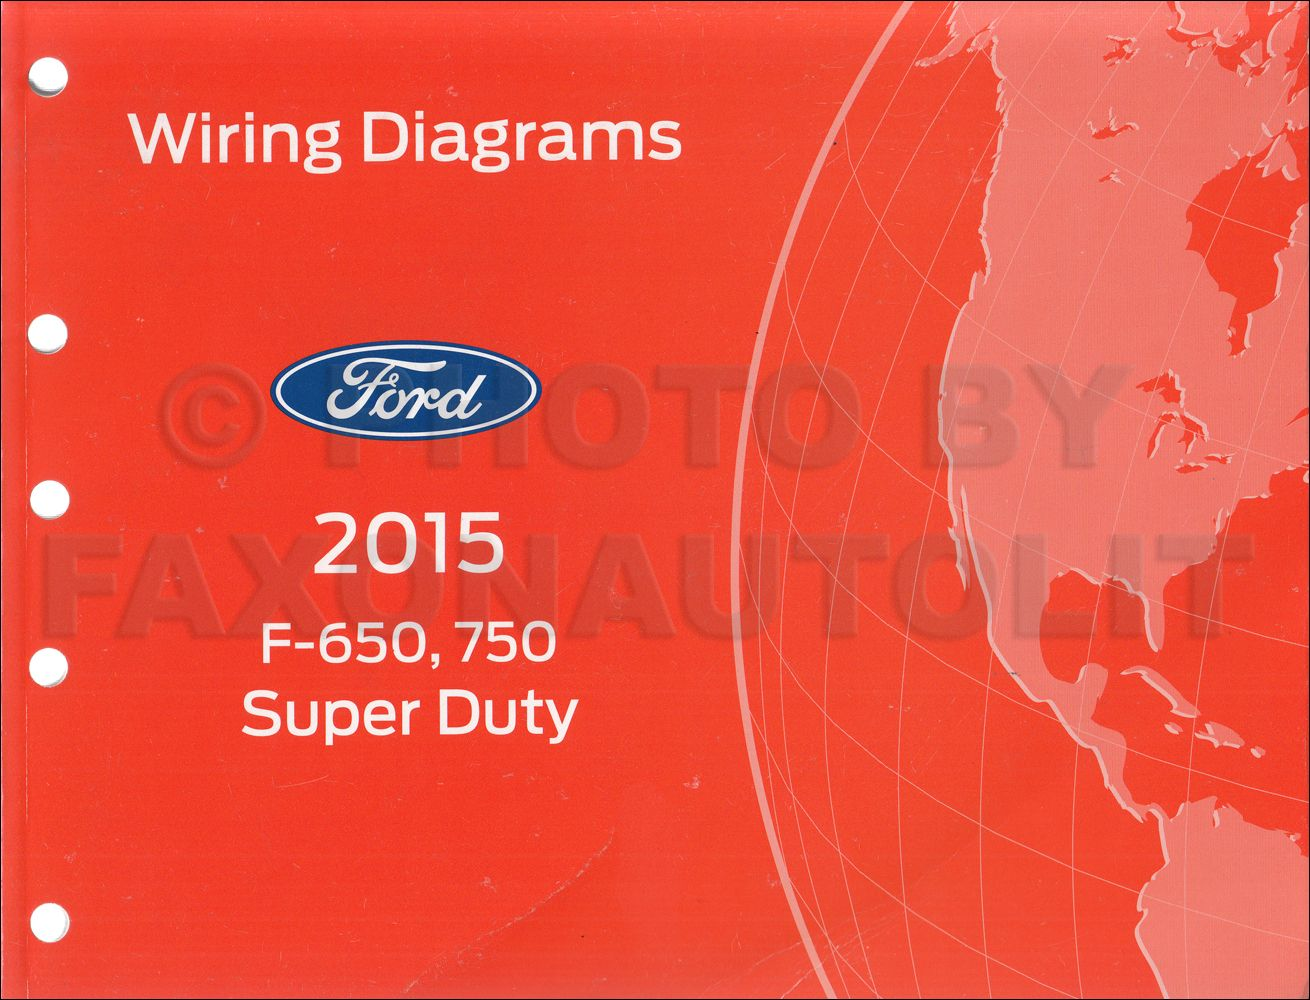 2007 ford f650 wiring diagram ls 1578  ford f650 starter wiring diagram  ls 1578  ford f650 starter wiring diagram